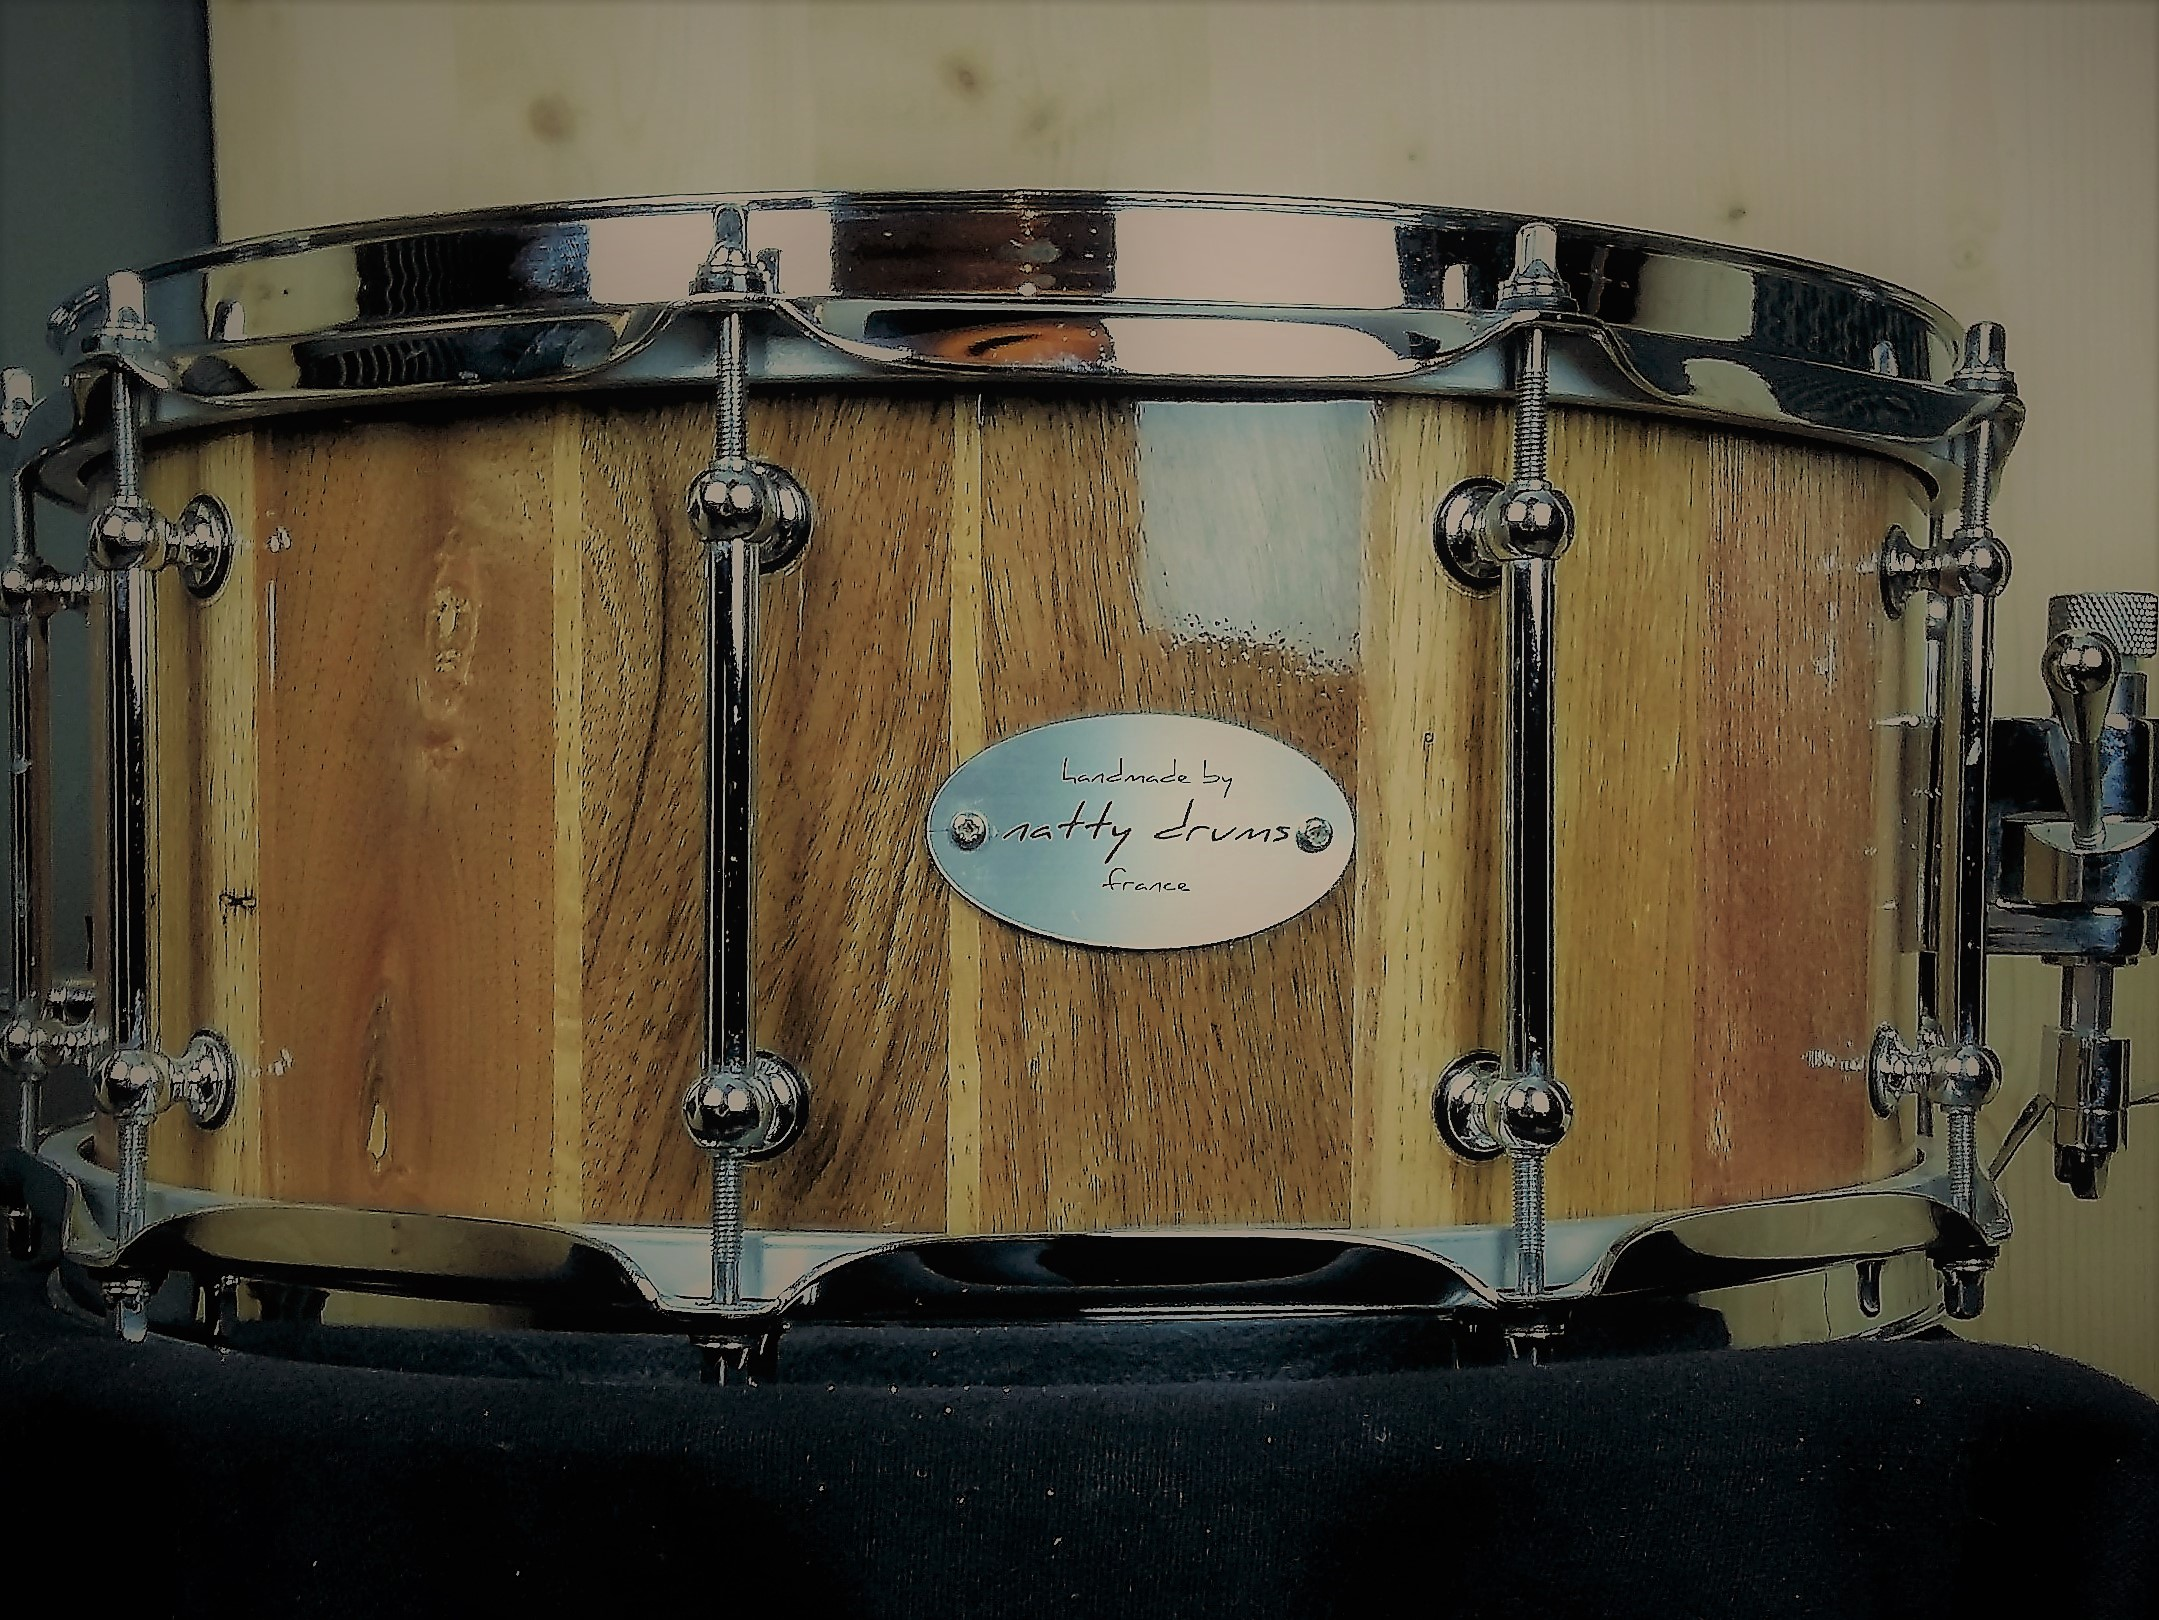 Natty-Drums Snare